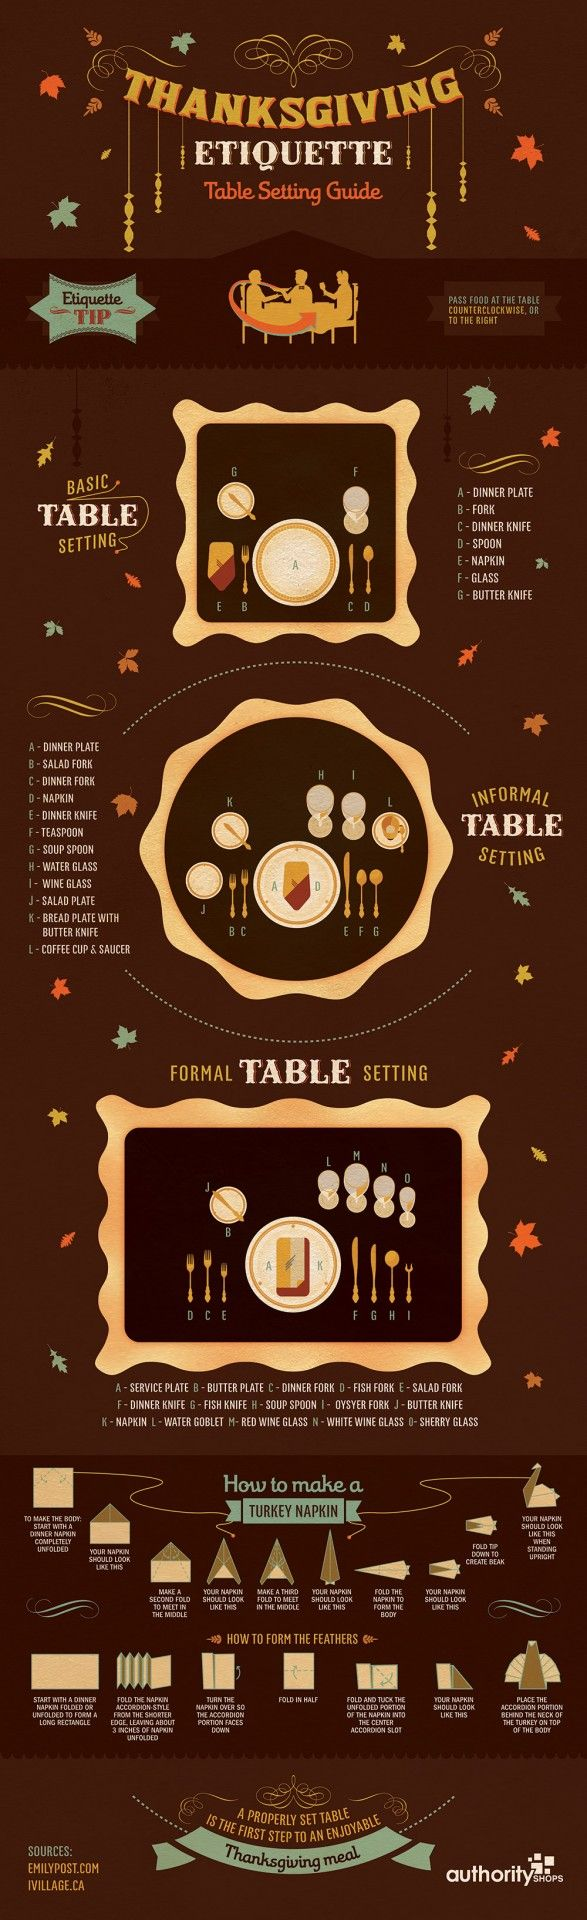 Best 25  Proper table setting ideas only on Pinterest   Table setting  diagram  Table etiquette and Table setting guidesBest 25  Proper table setting ideas only on Pinterest   Table  . Fine Dining Table Service Rules. Home Design Ideas